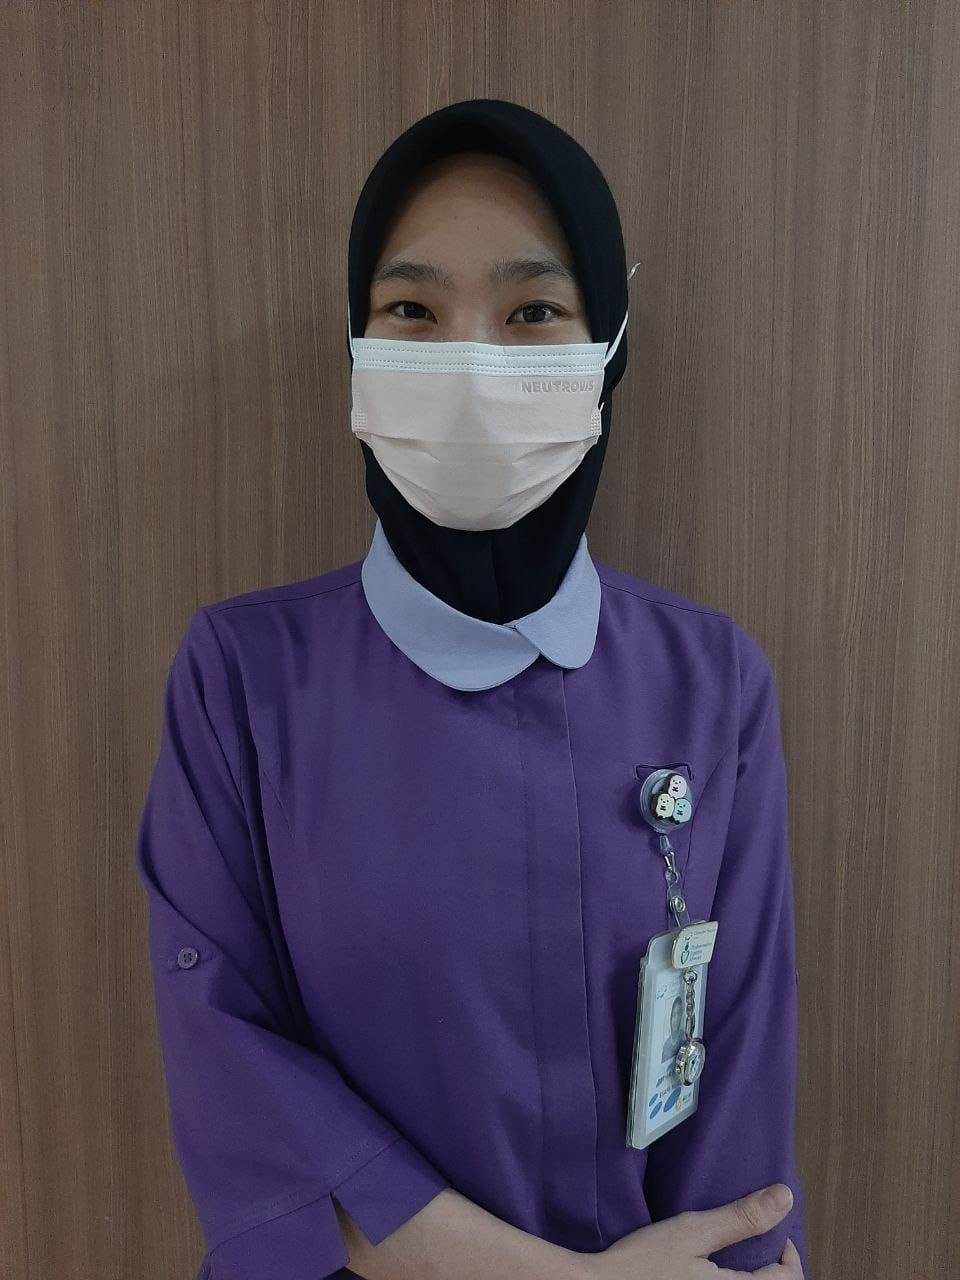 Fathin will be celebrating Malaysia Day with her husband's family and her colleagues at the hospital.